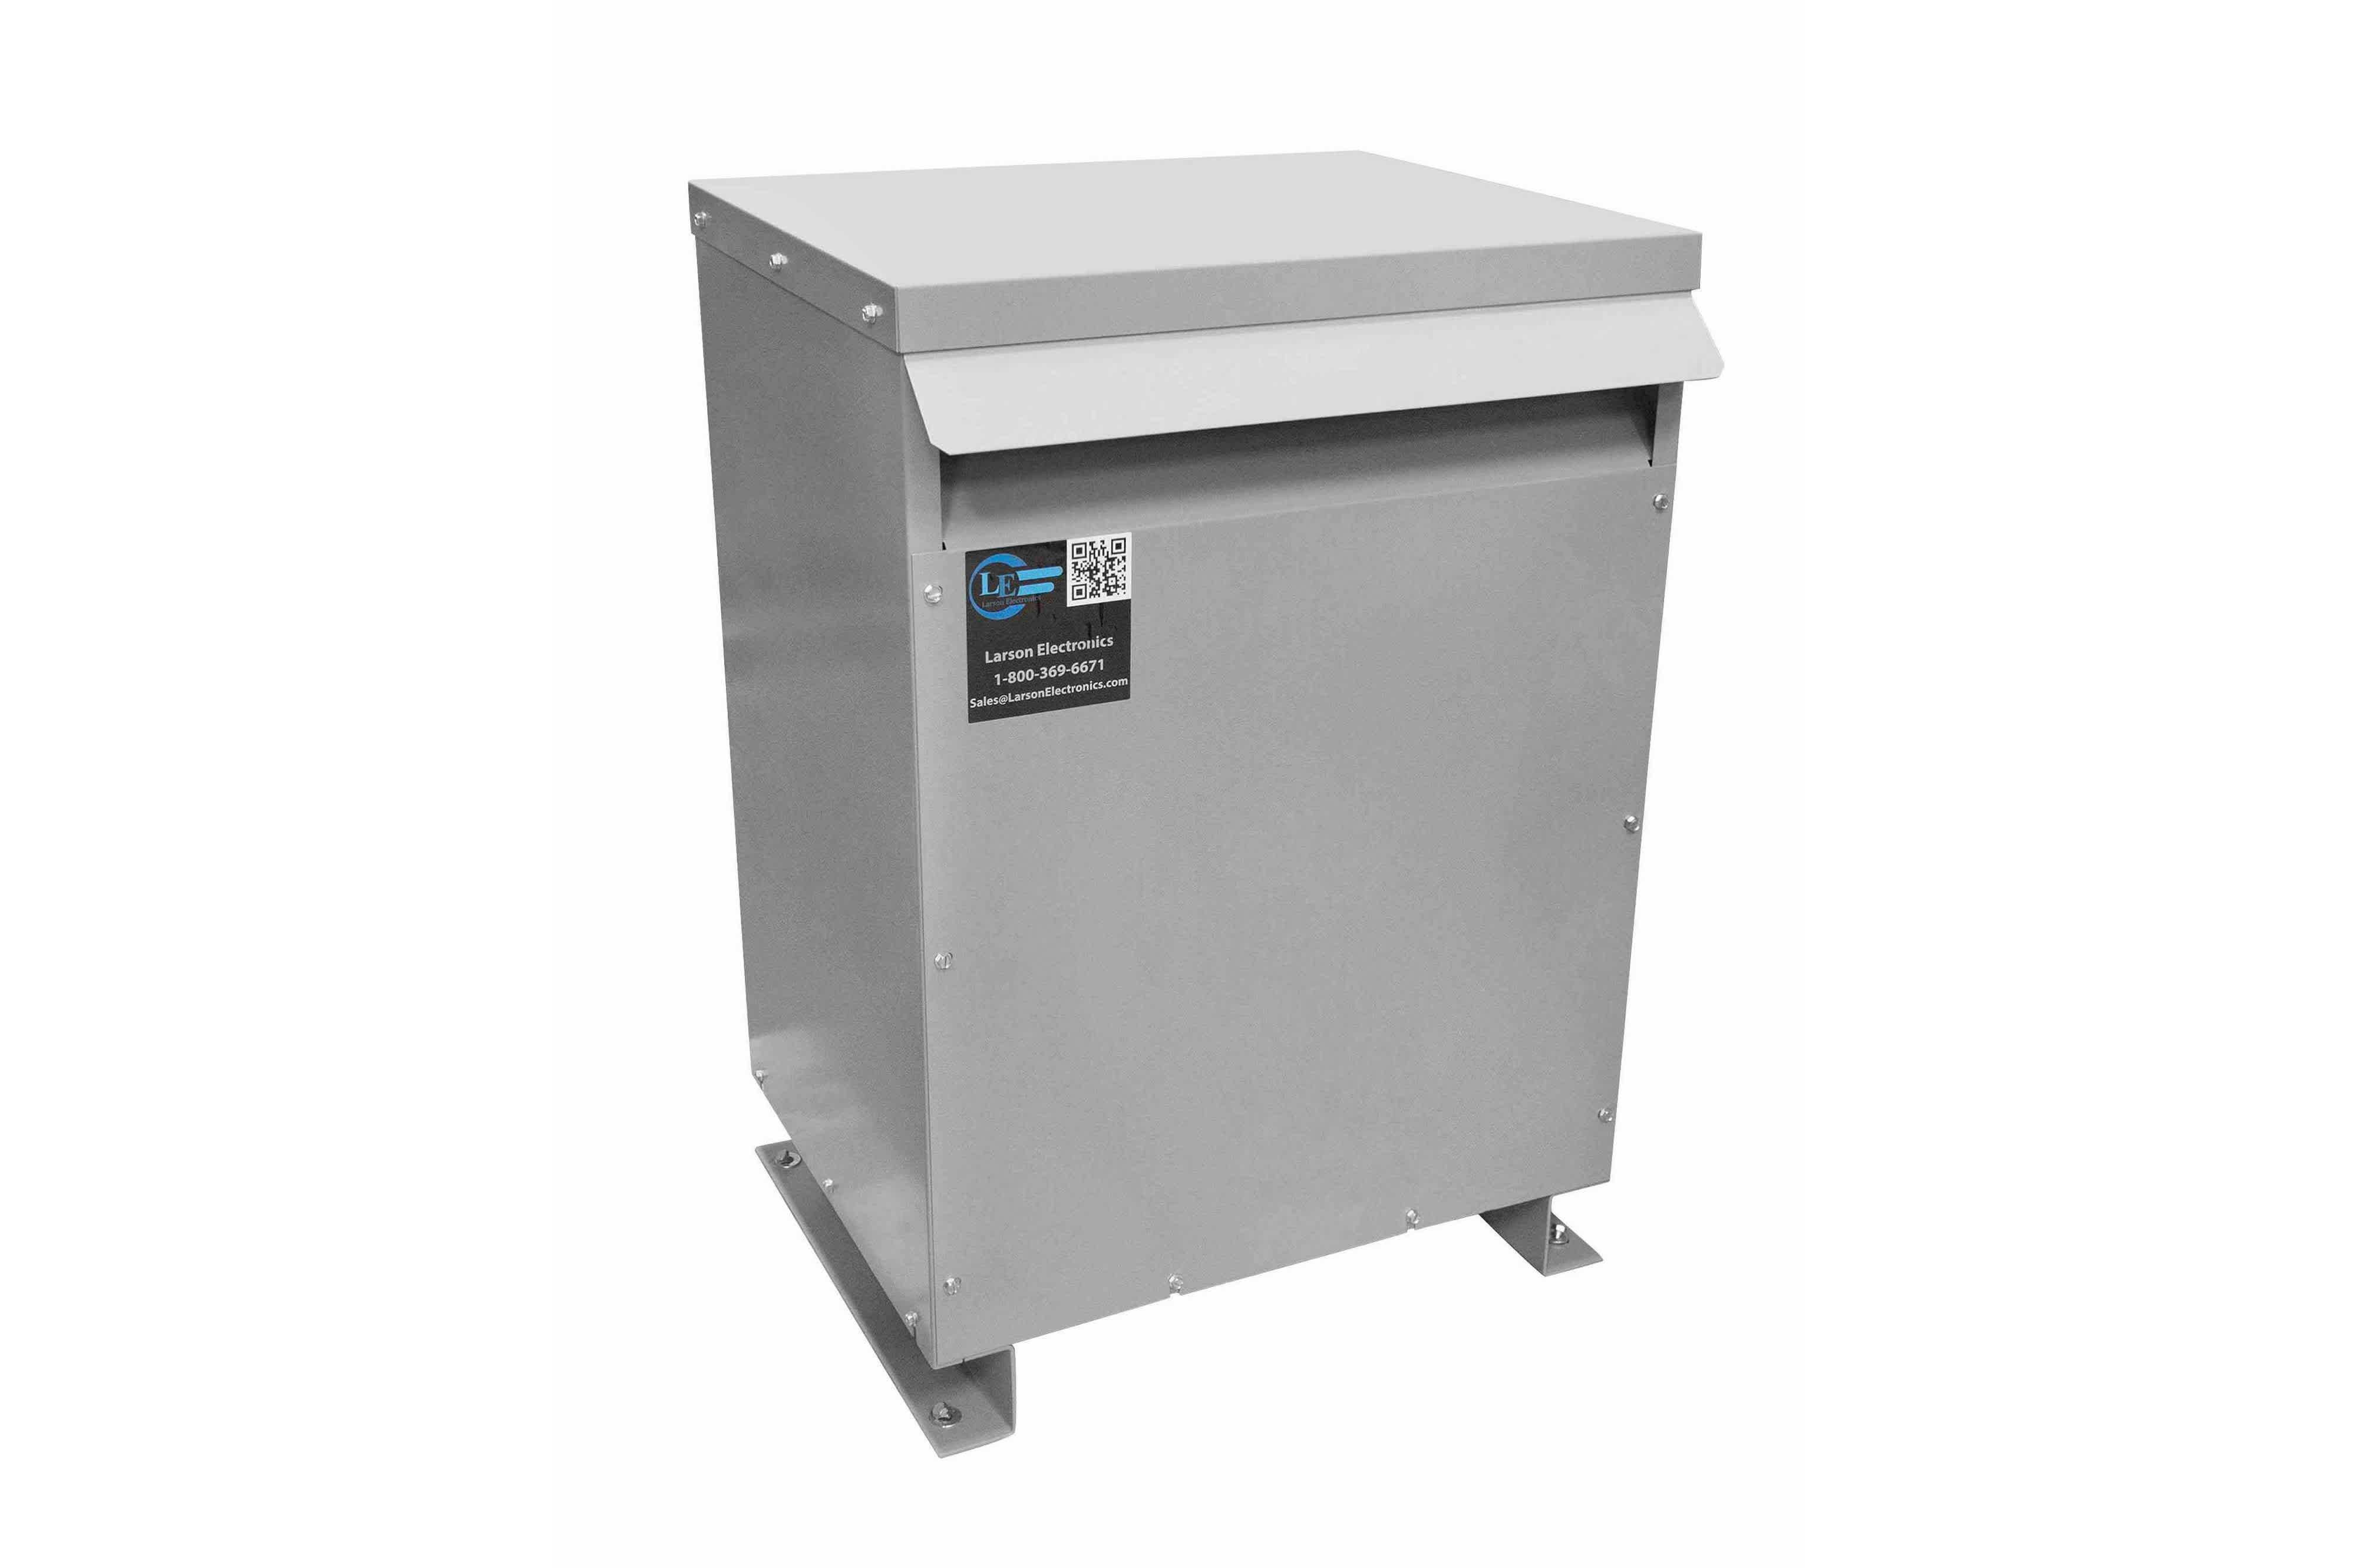 9 kVA 3PH Isolation Transformer, 230V Wye Primary, 480V Delta Secondary, N3R, Ventilated, 60 Hz